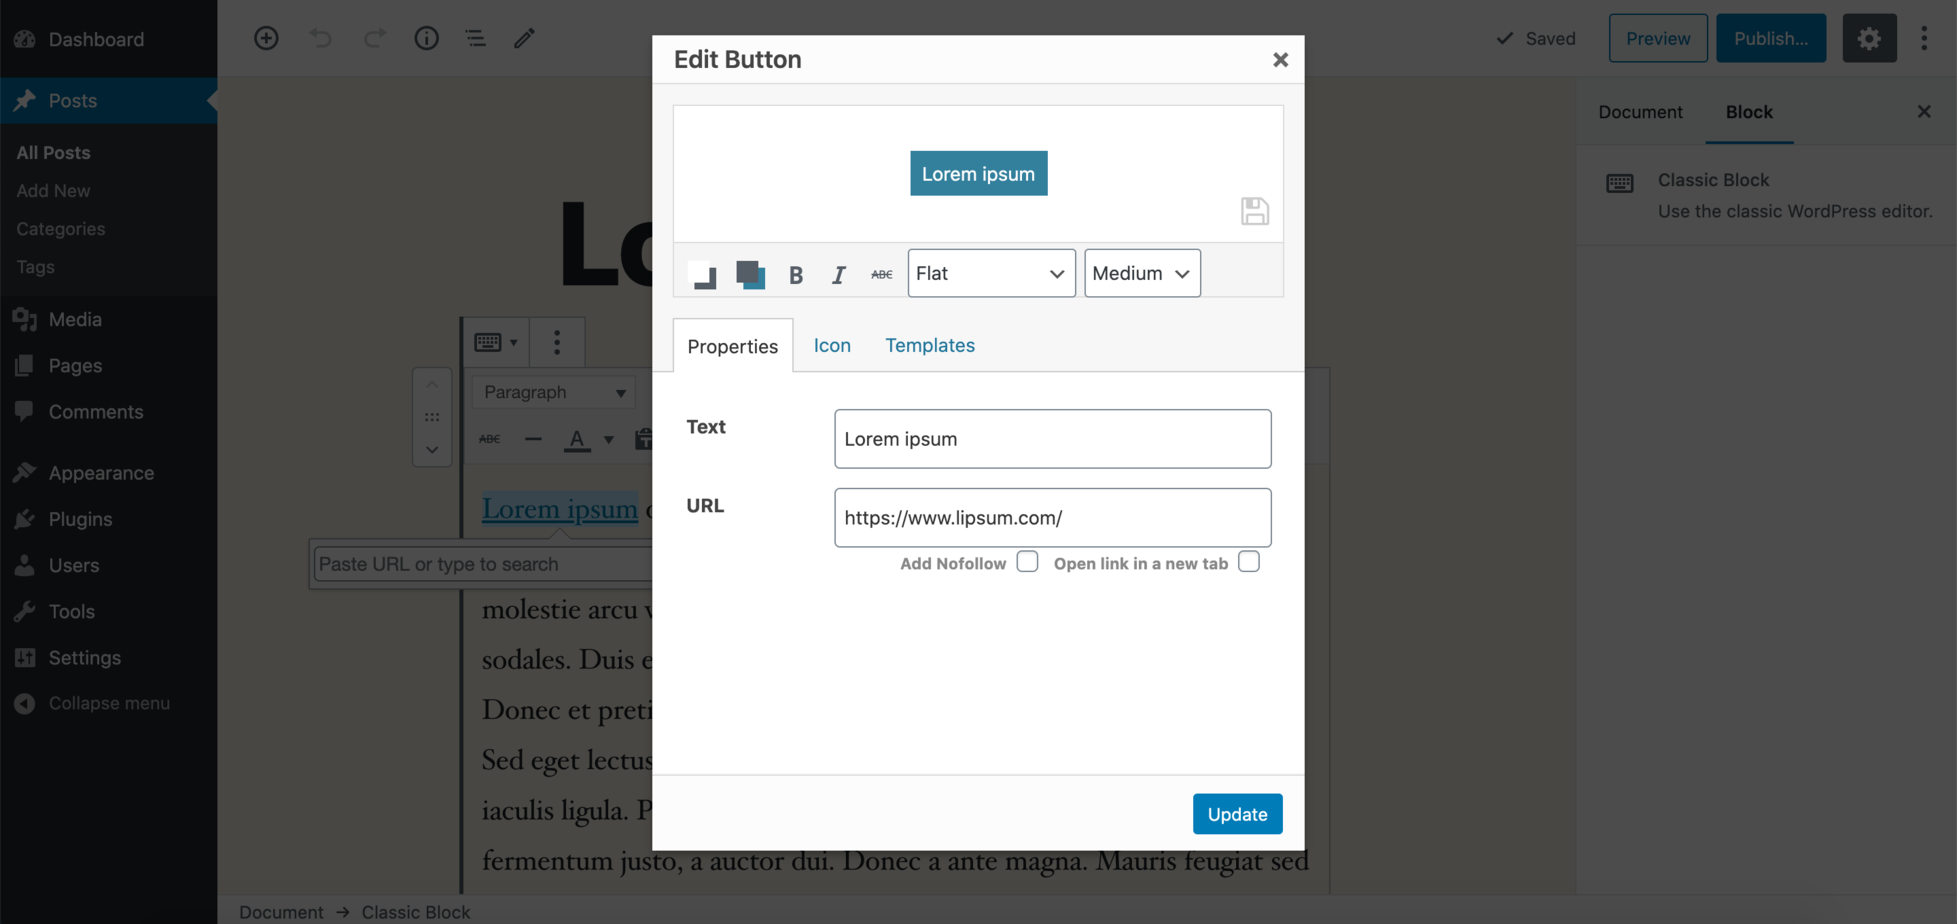 Adding a button link to the text.